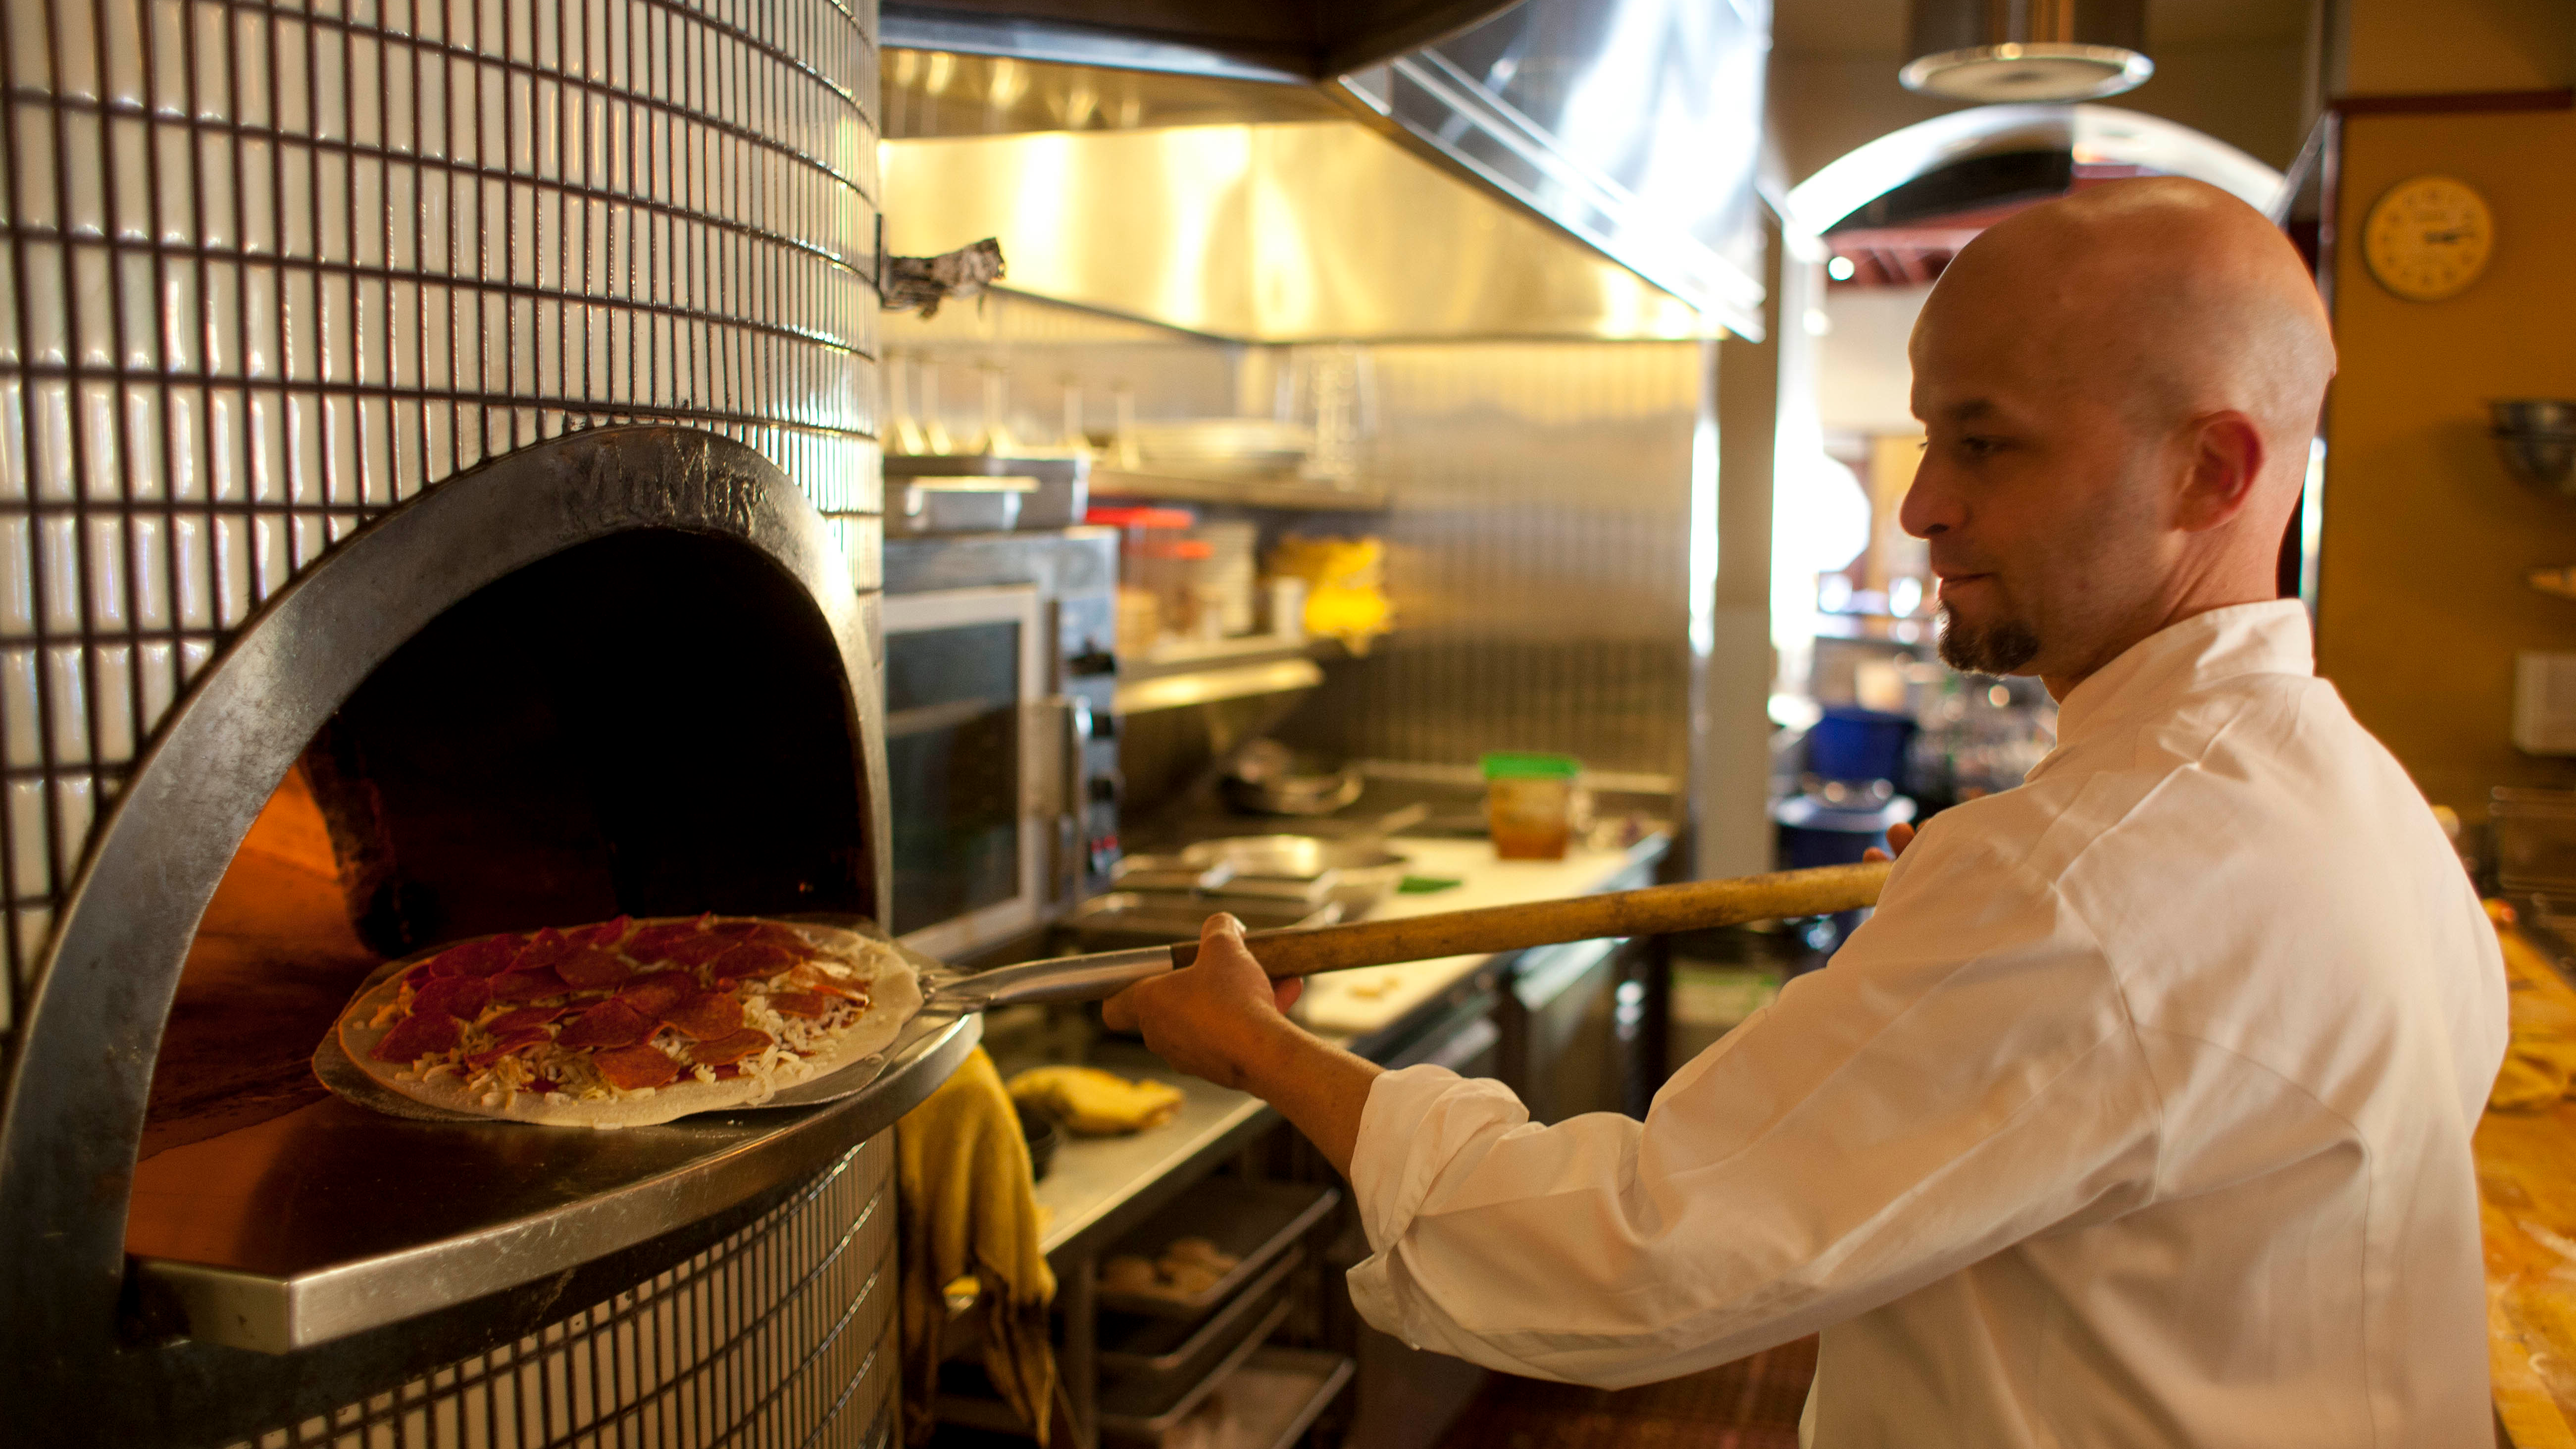 Woman Places Order For Pineapple Pizza, Chef Understandably Has Other Ideas